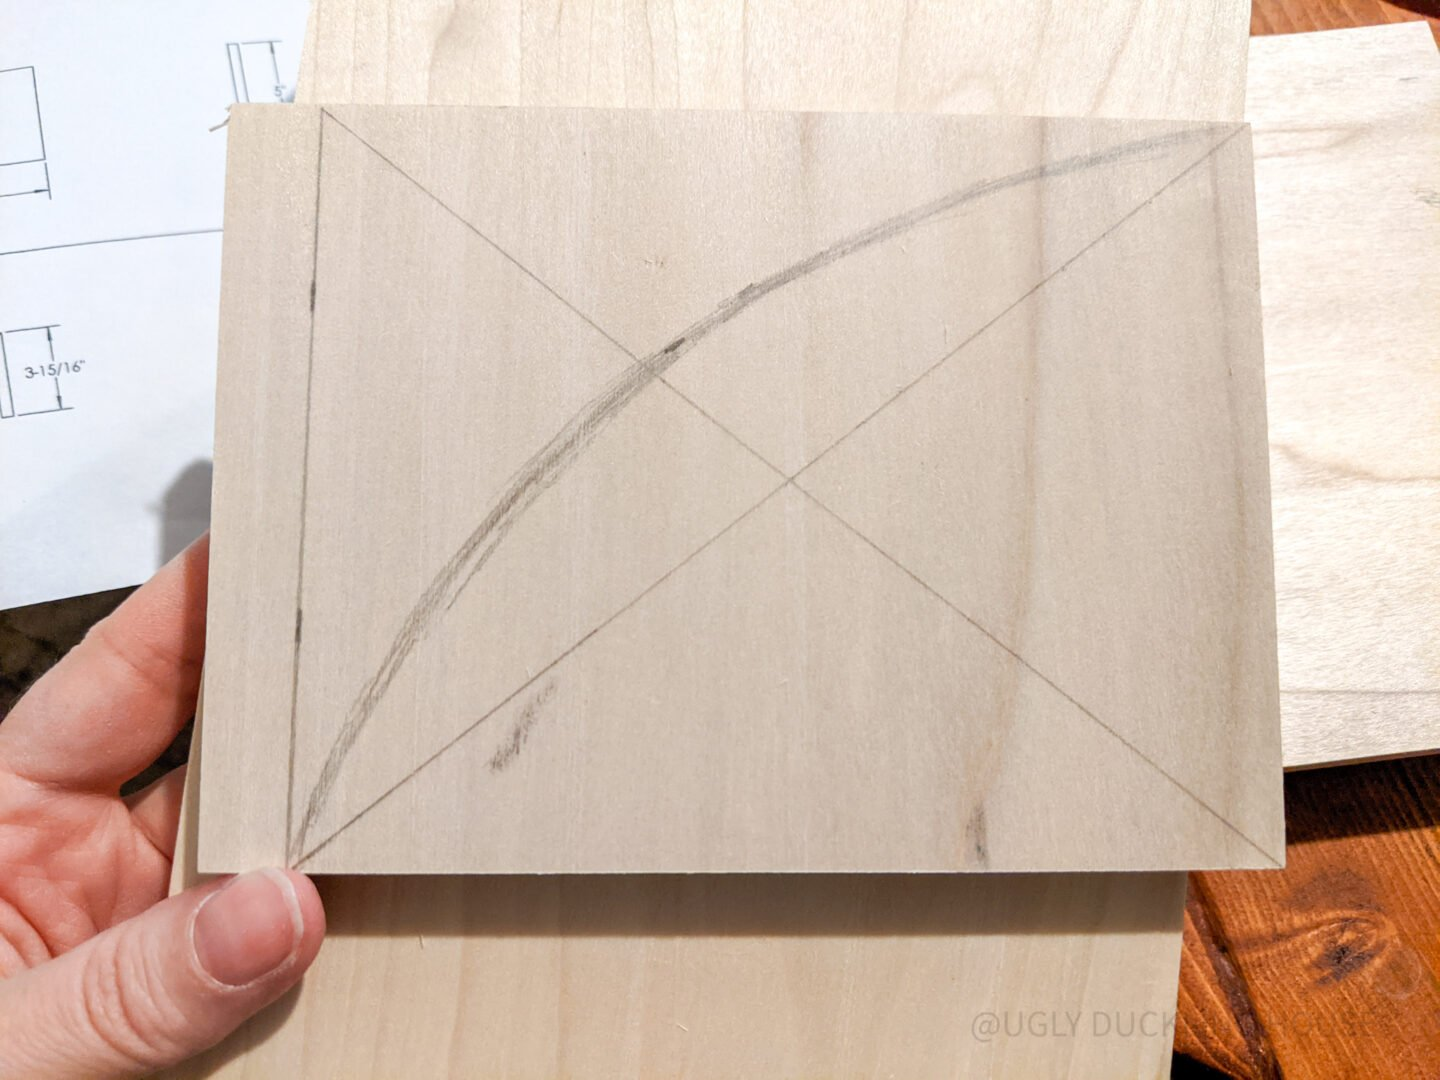 draw and cut the curve of the sides and dividers